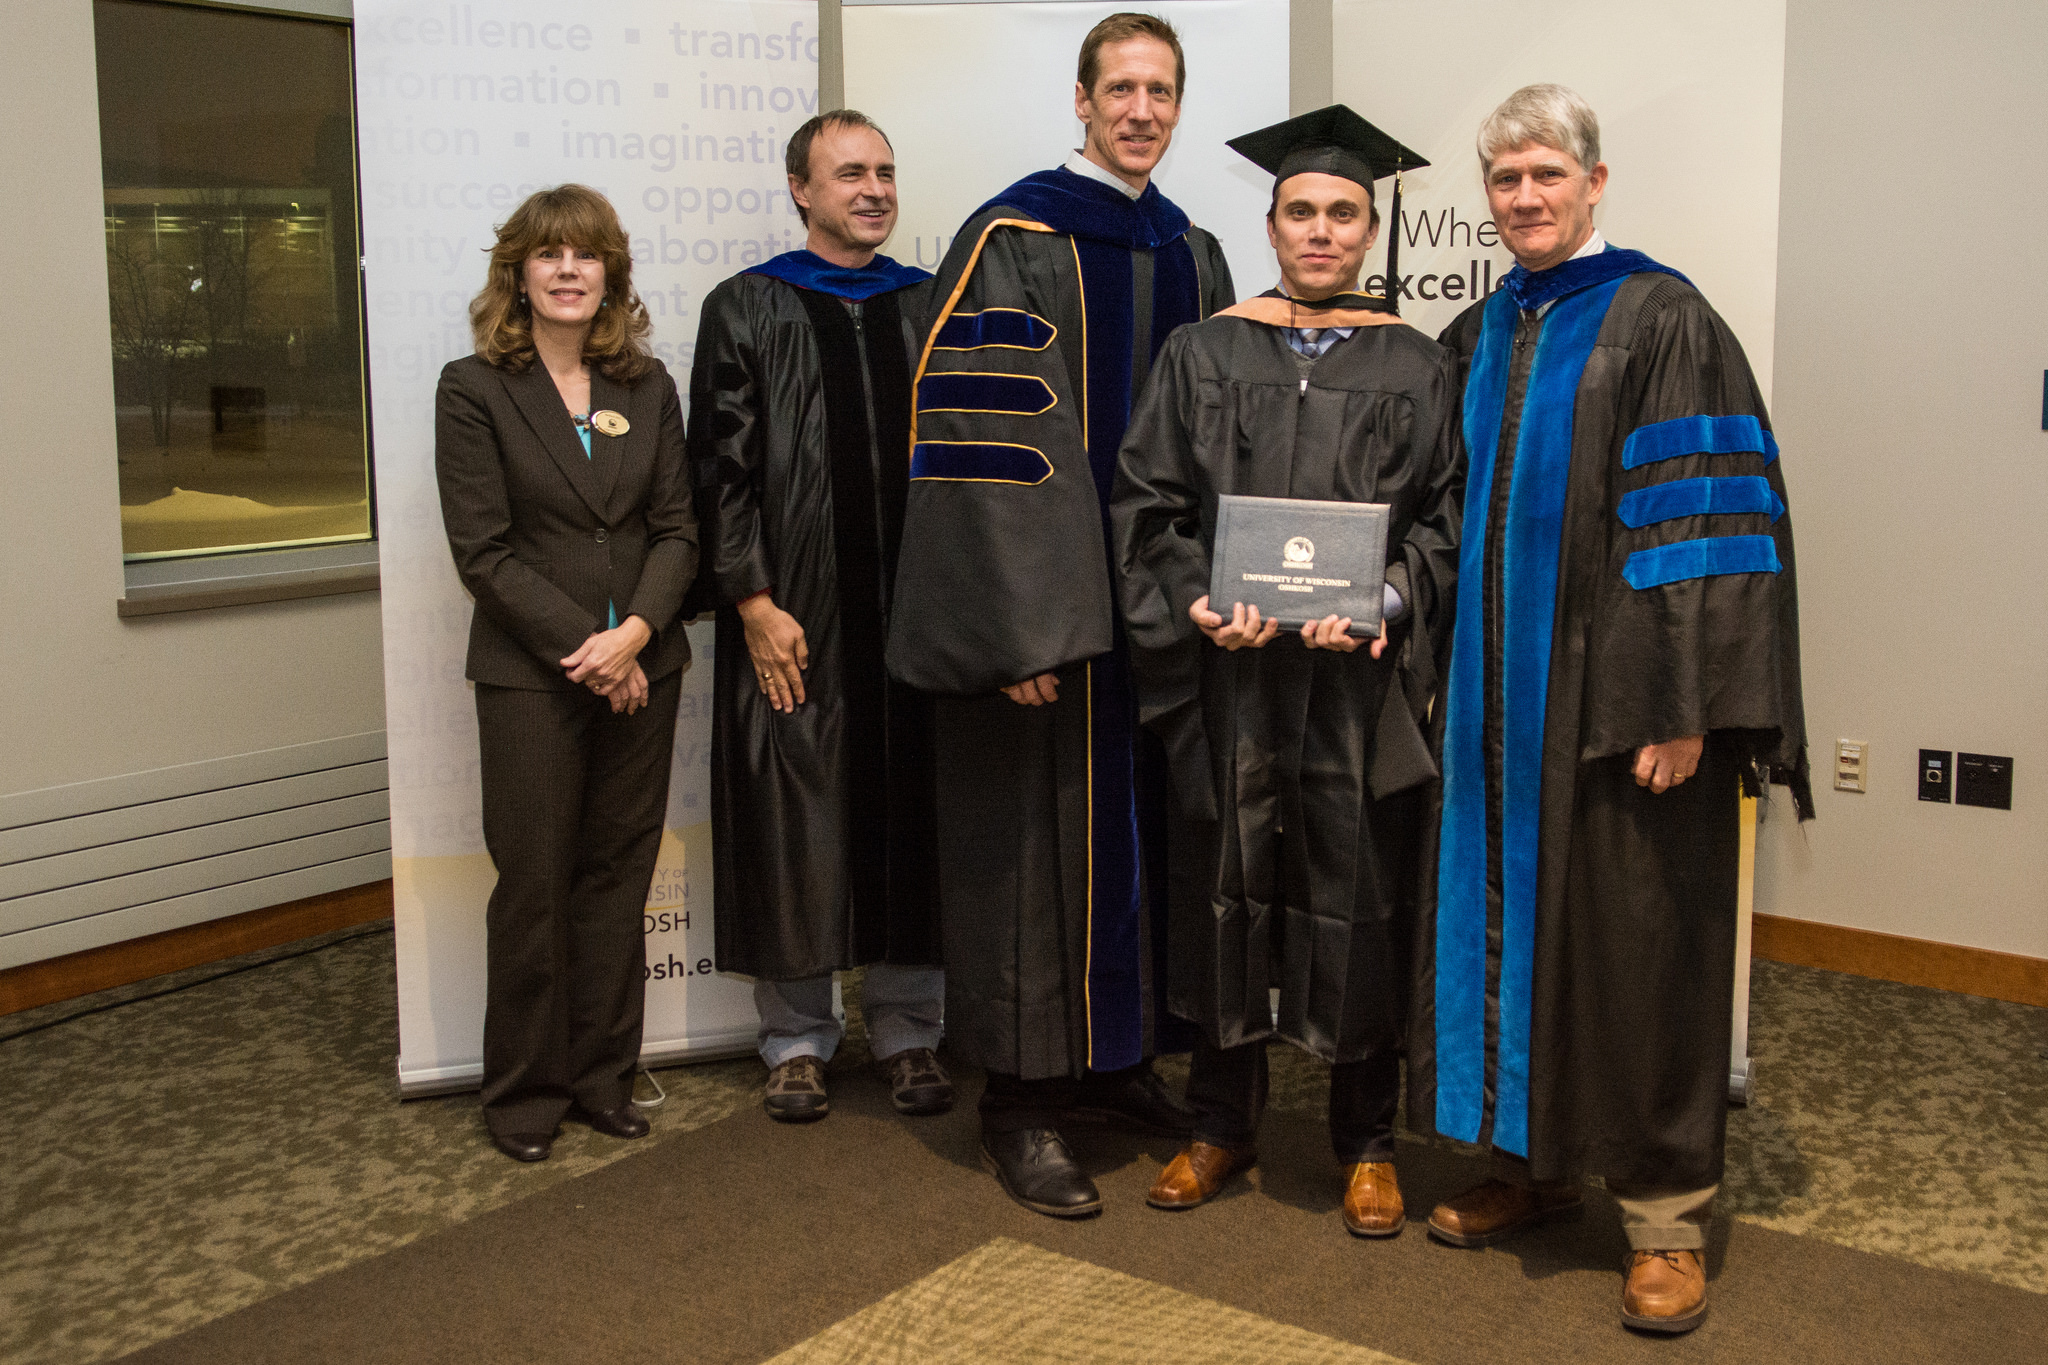 Adam Quirk graduated with an MBA from the University of Wisconsin.